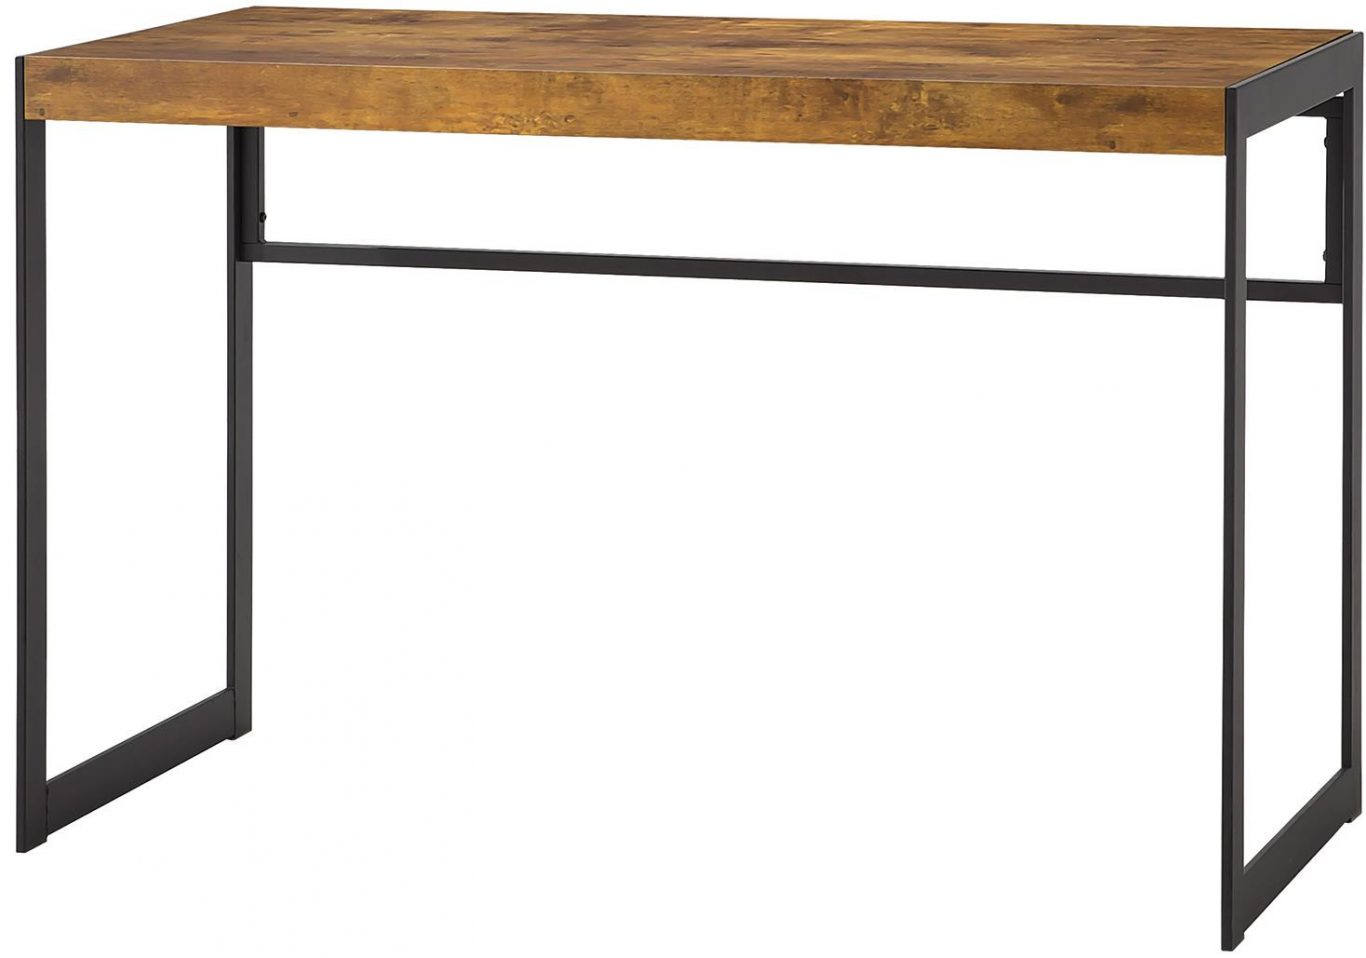 Cheap Metal Desk Simple Design with Wood